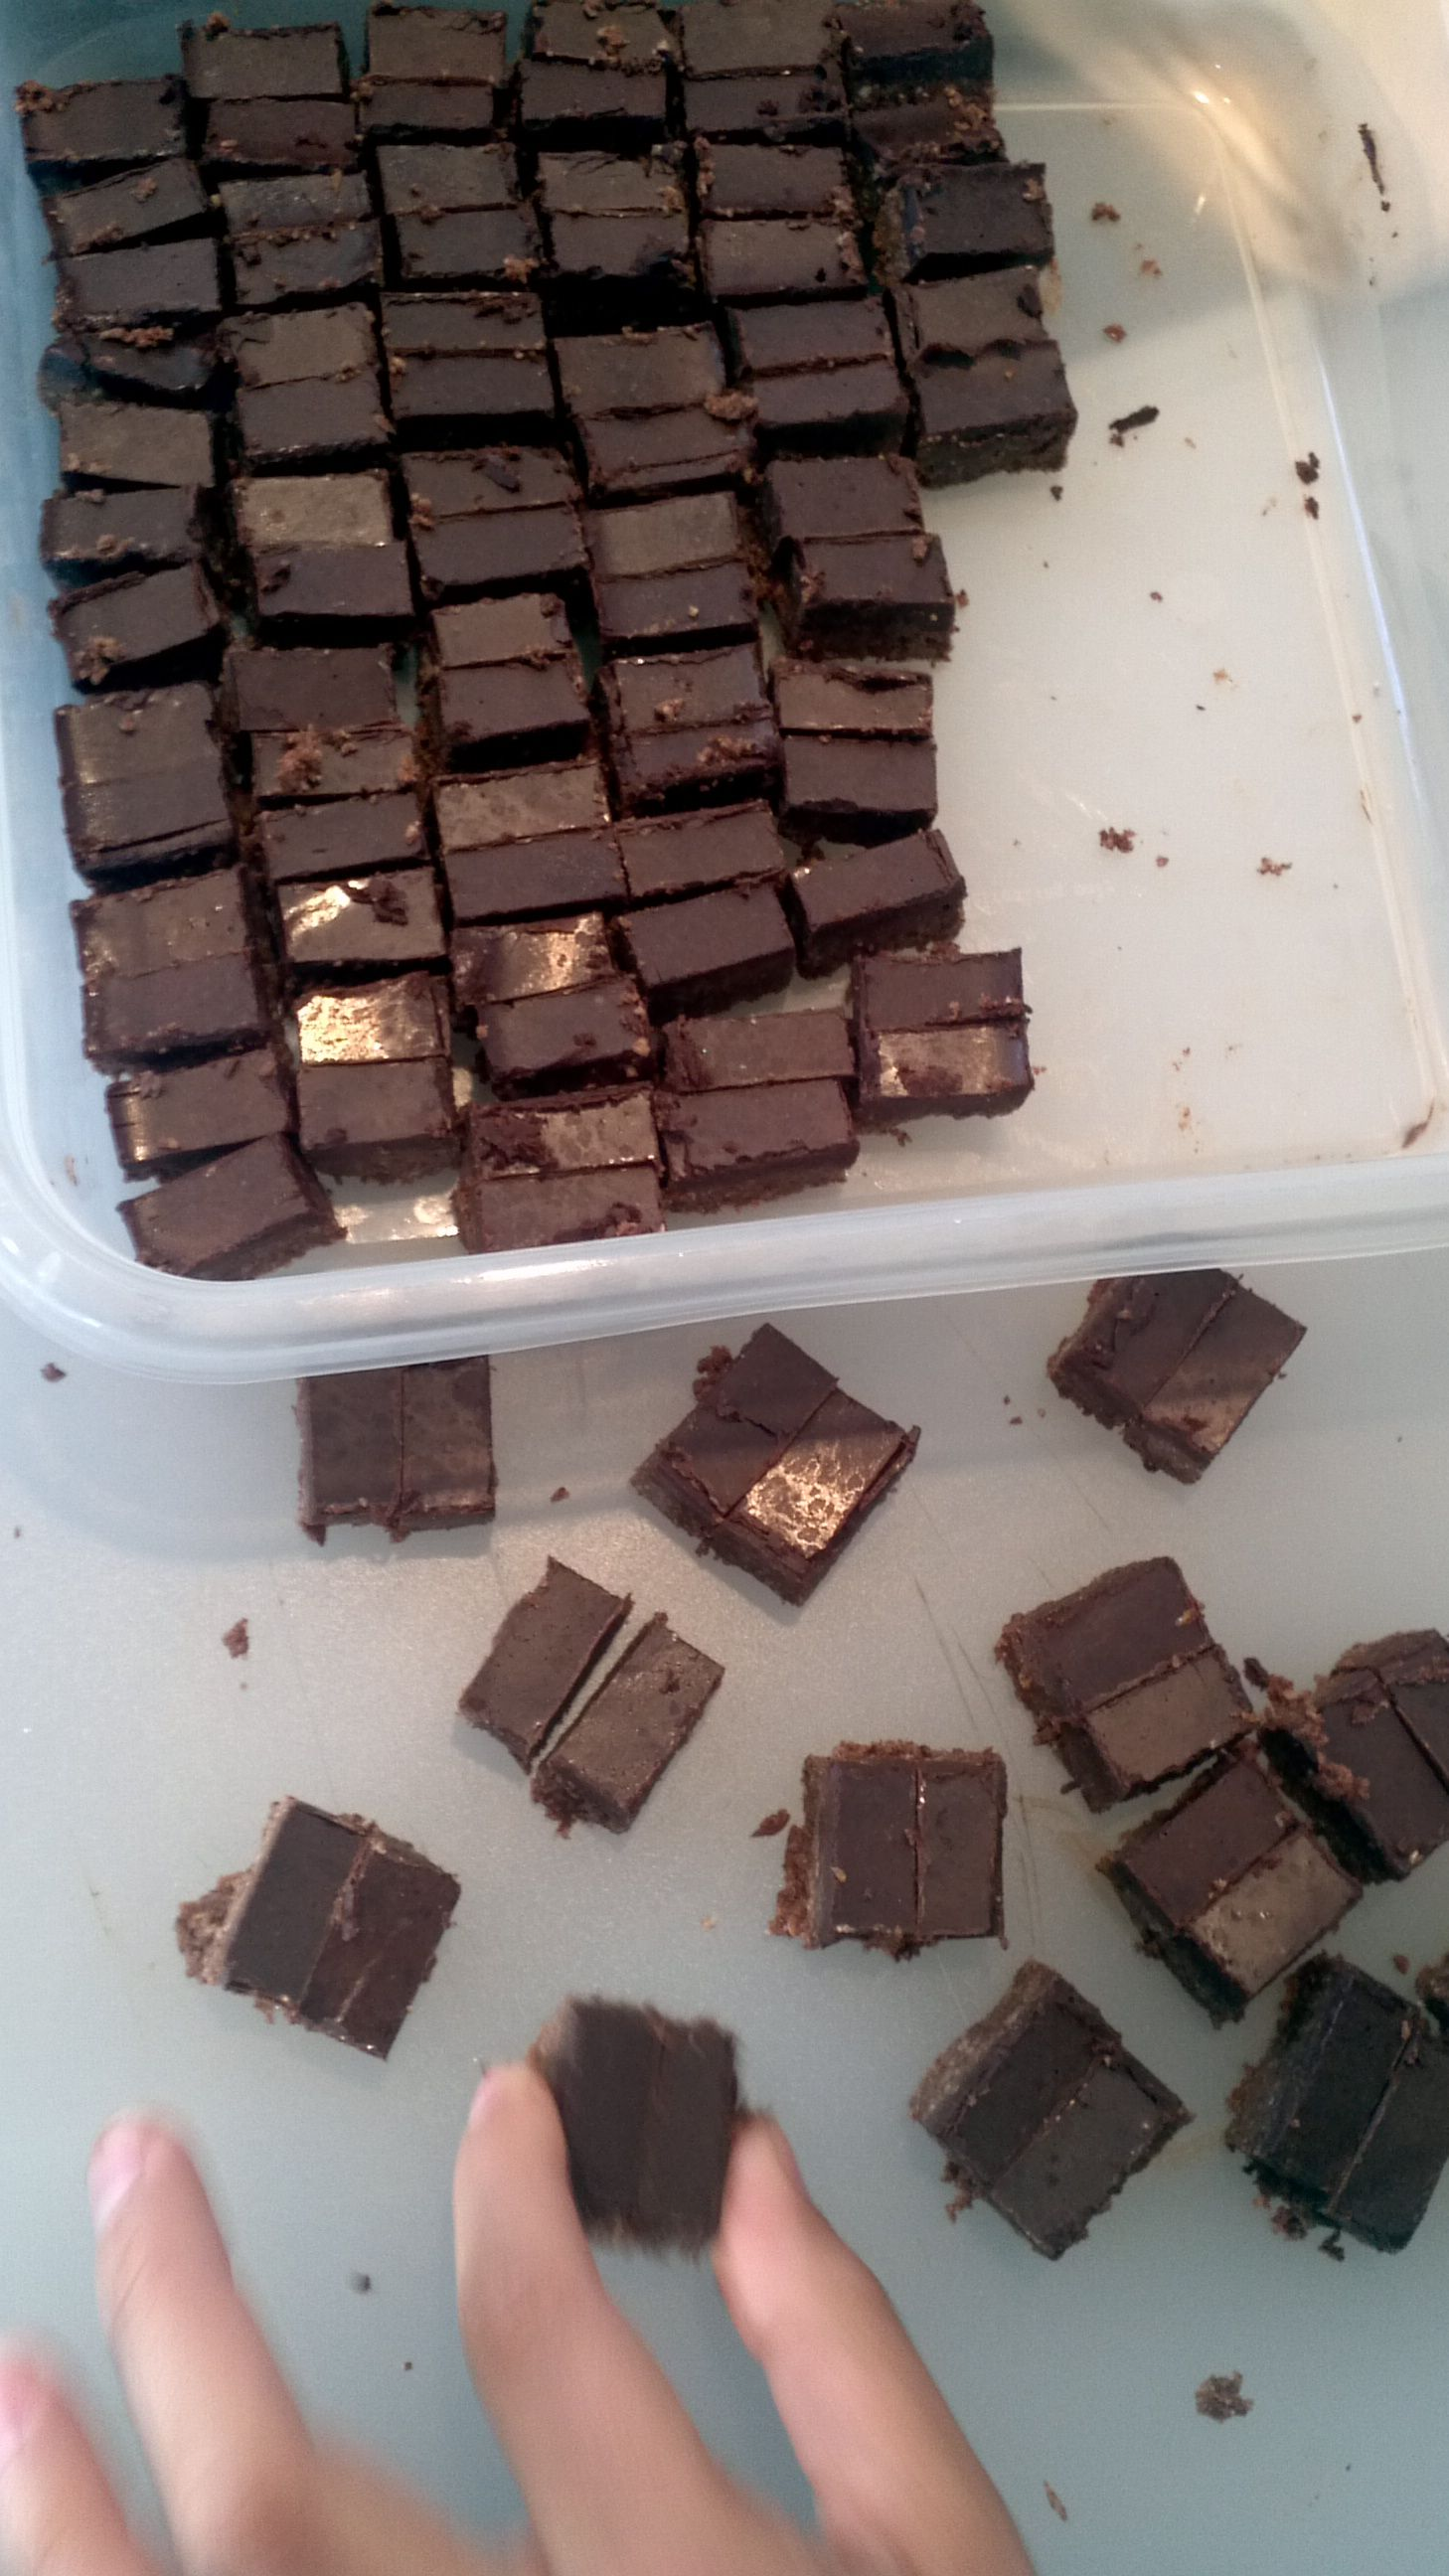 Chocolate Almond Protein Bars from Maximized Living